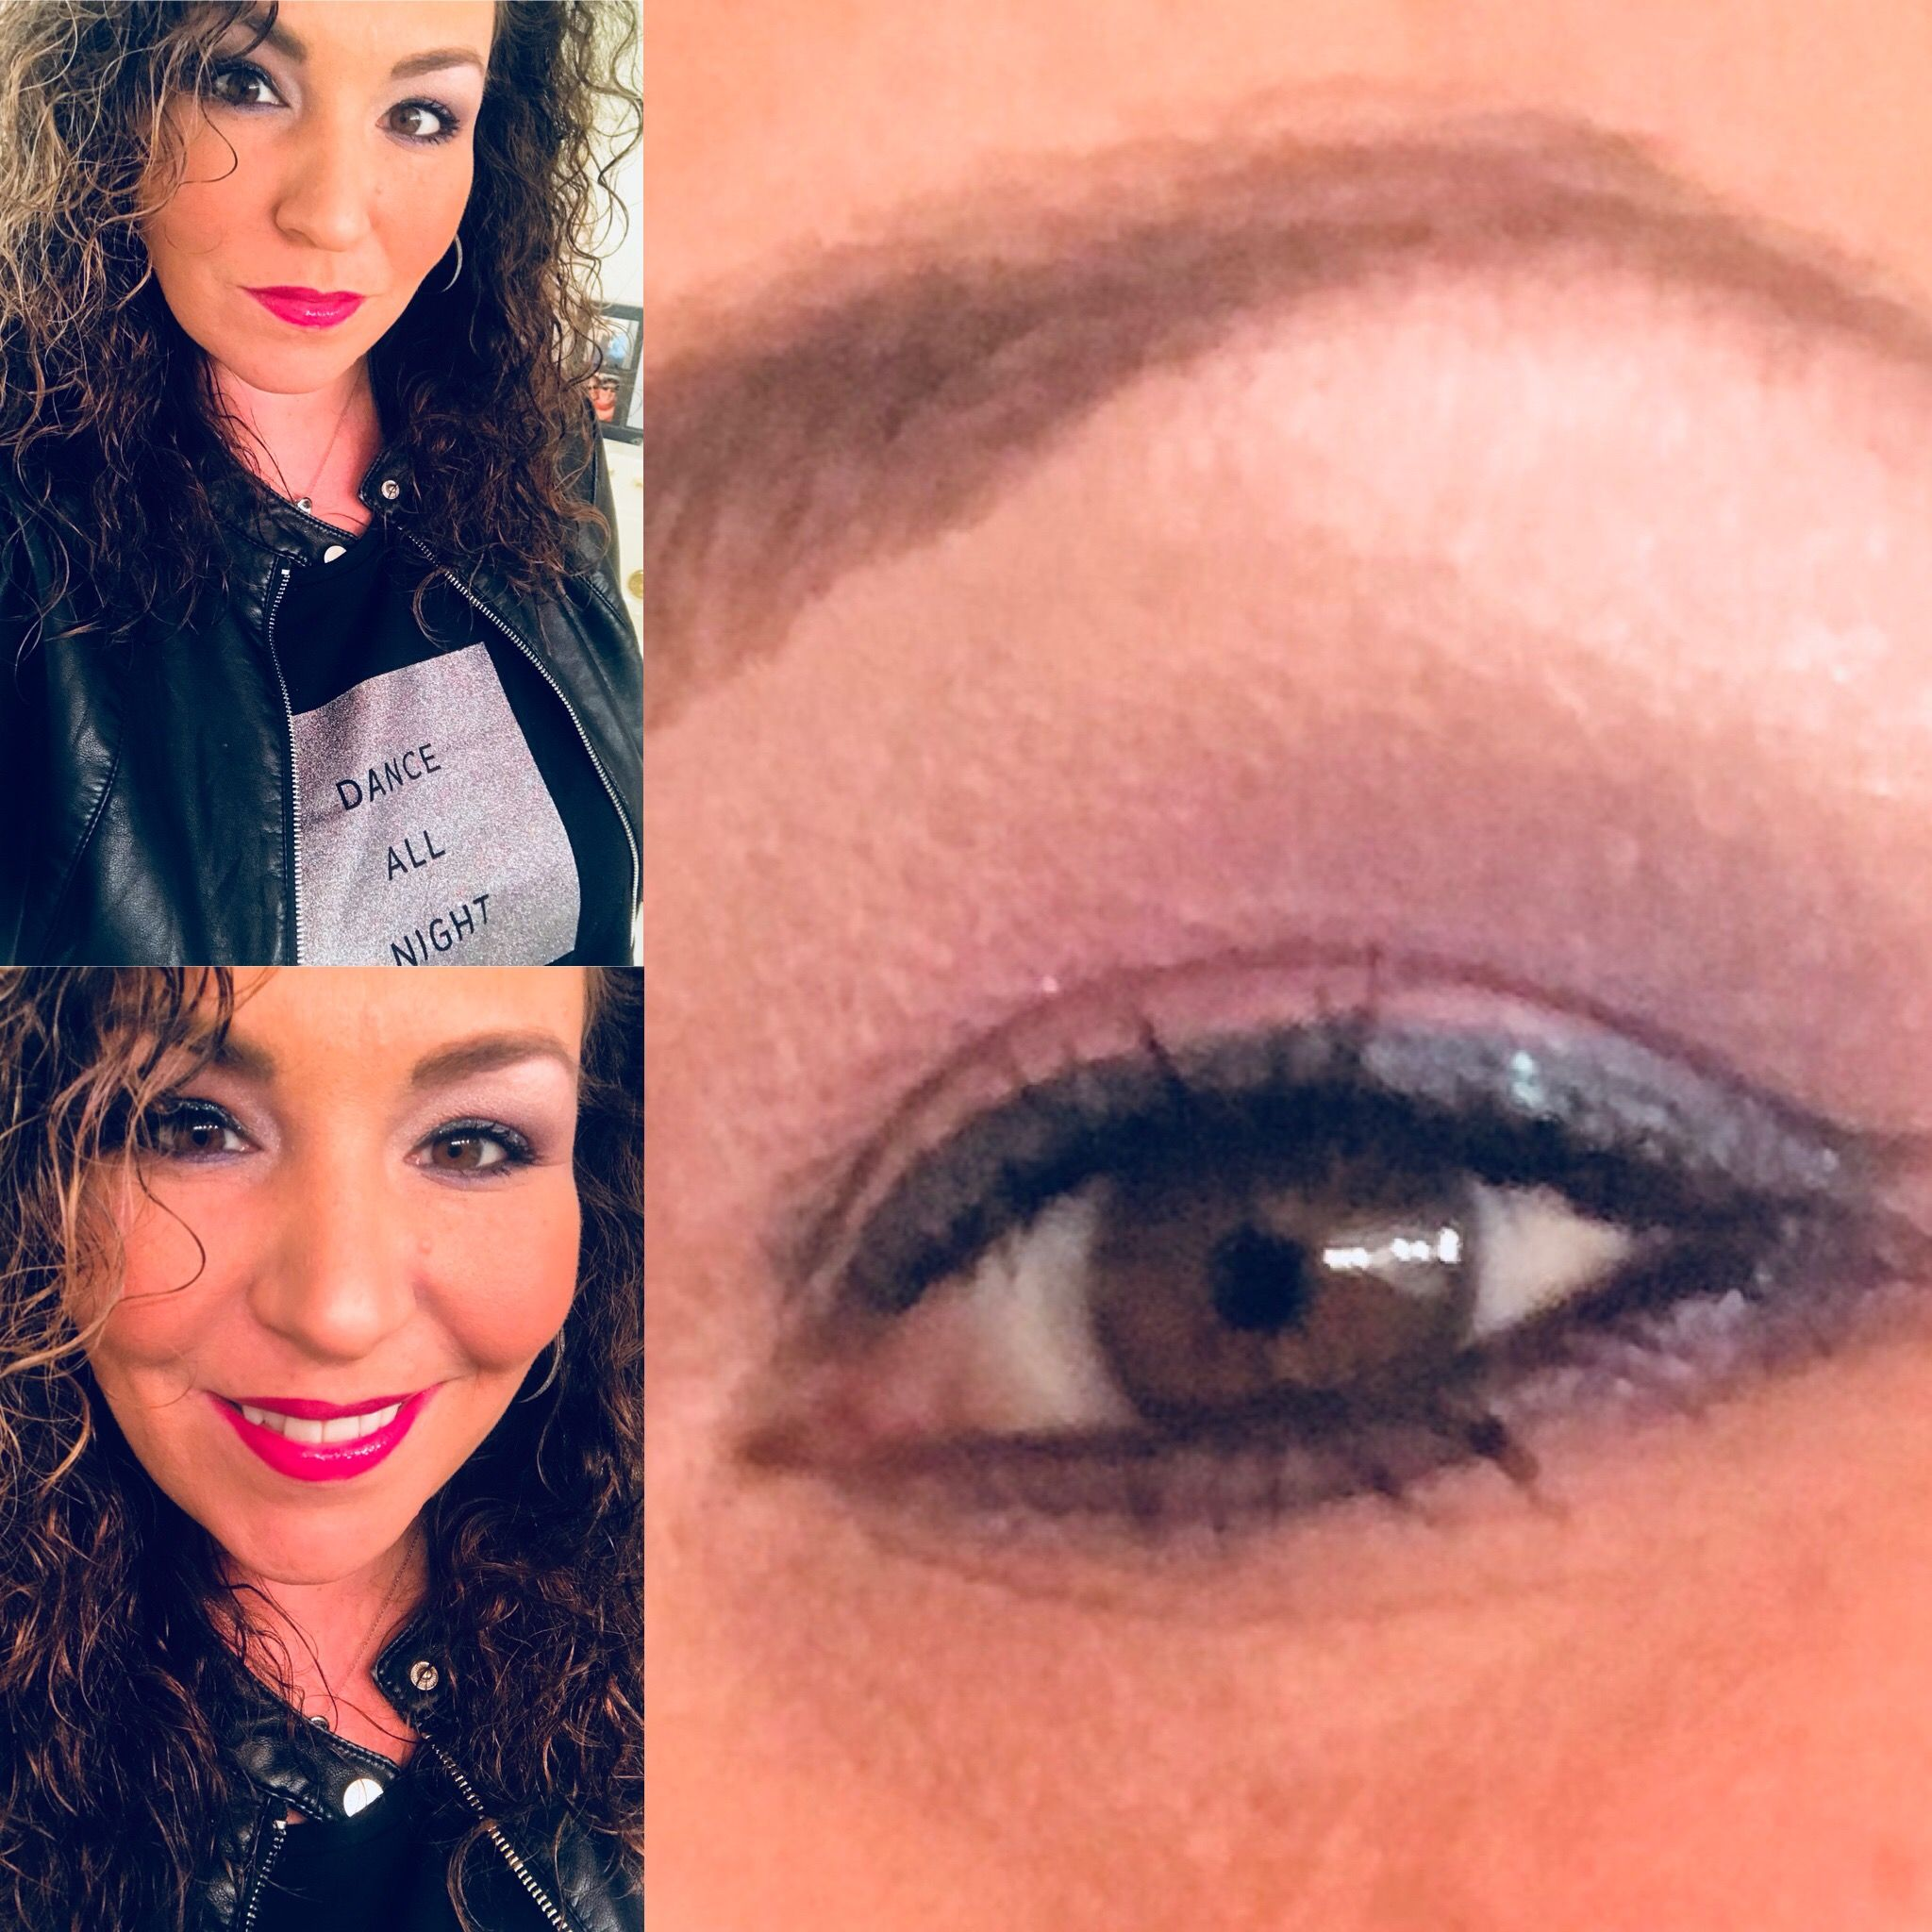 Having fun with some purples and greys! -#holidayglam #holidaymakeup #sparkleandshimmer #beautyinnovator #spaandglamwithkellyann #bethebestyou #beyourself